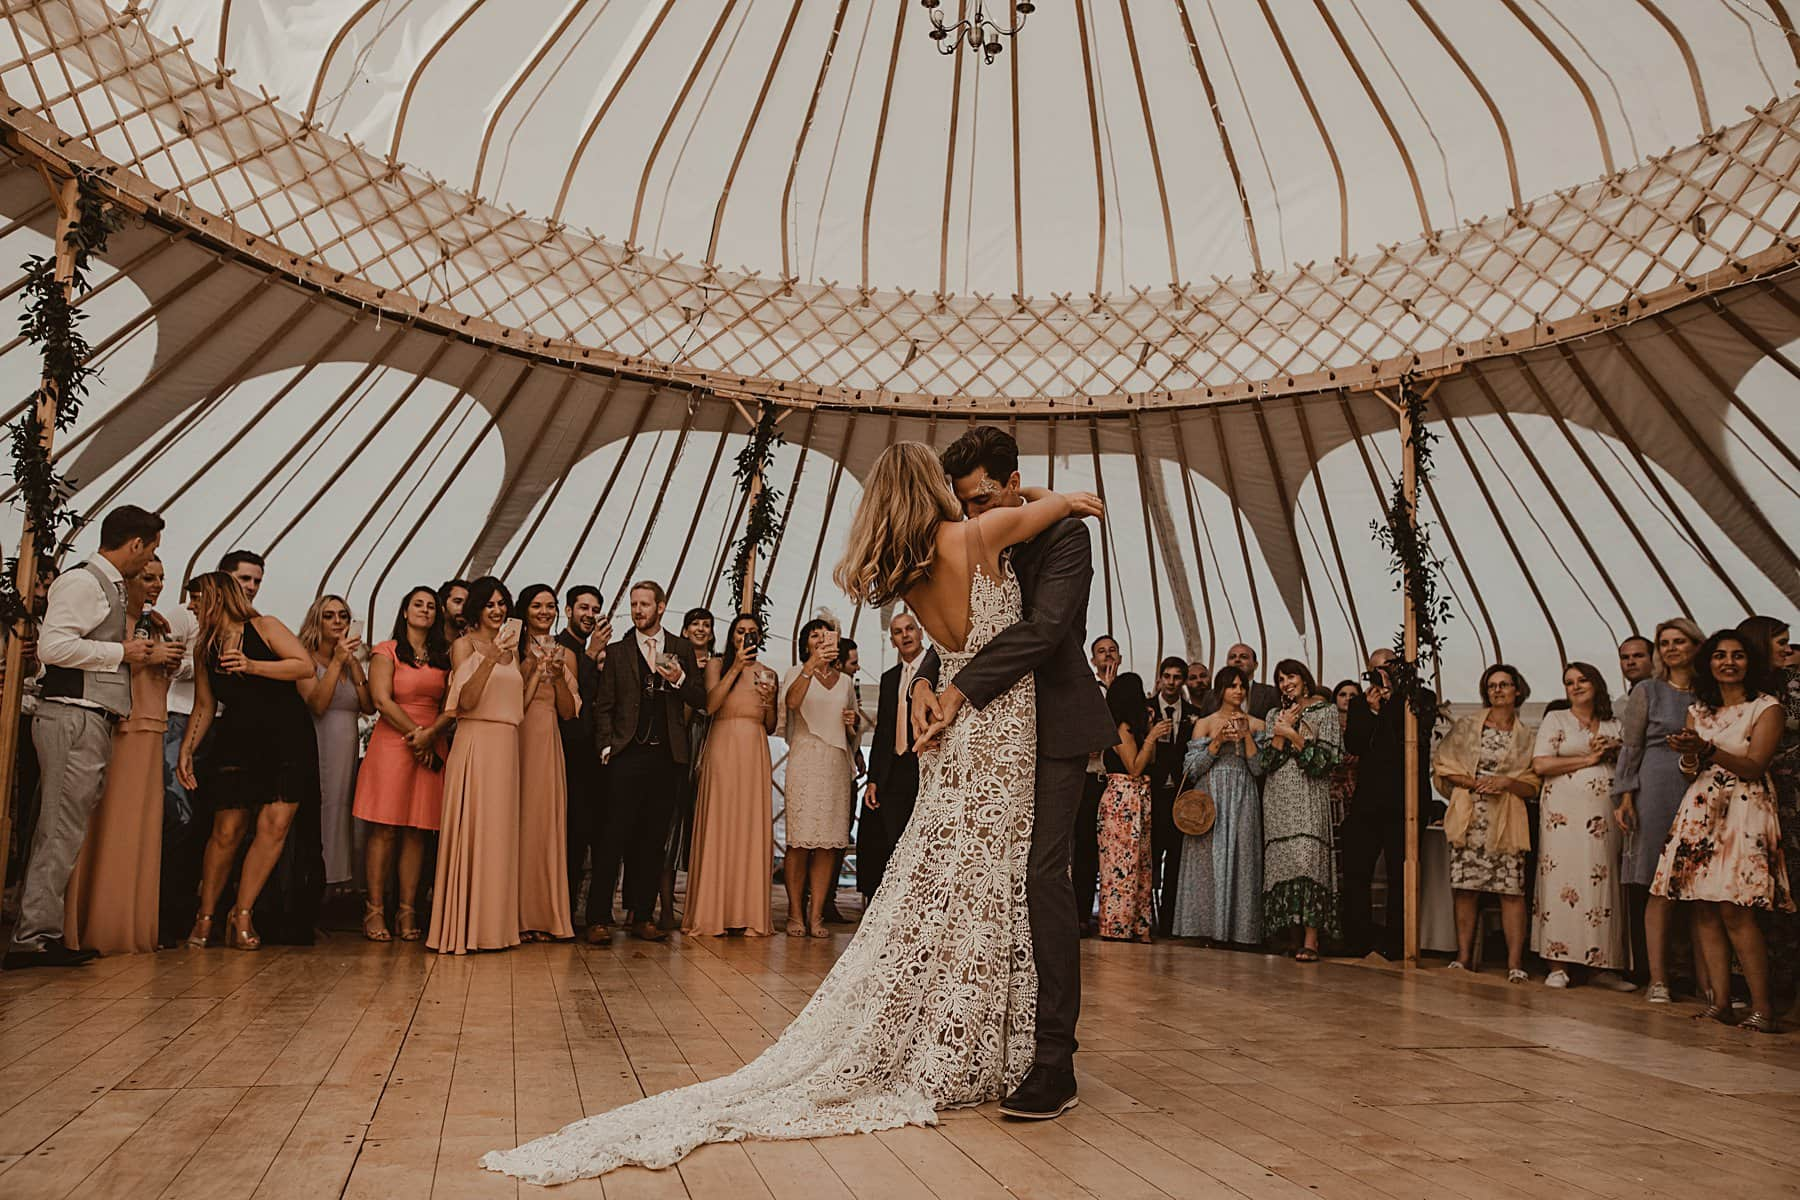 Bride and Groom first dance in yurt